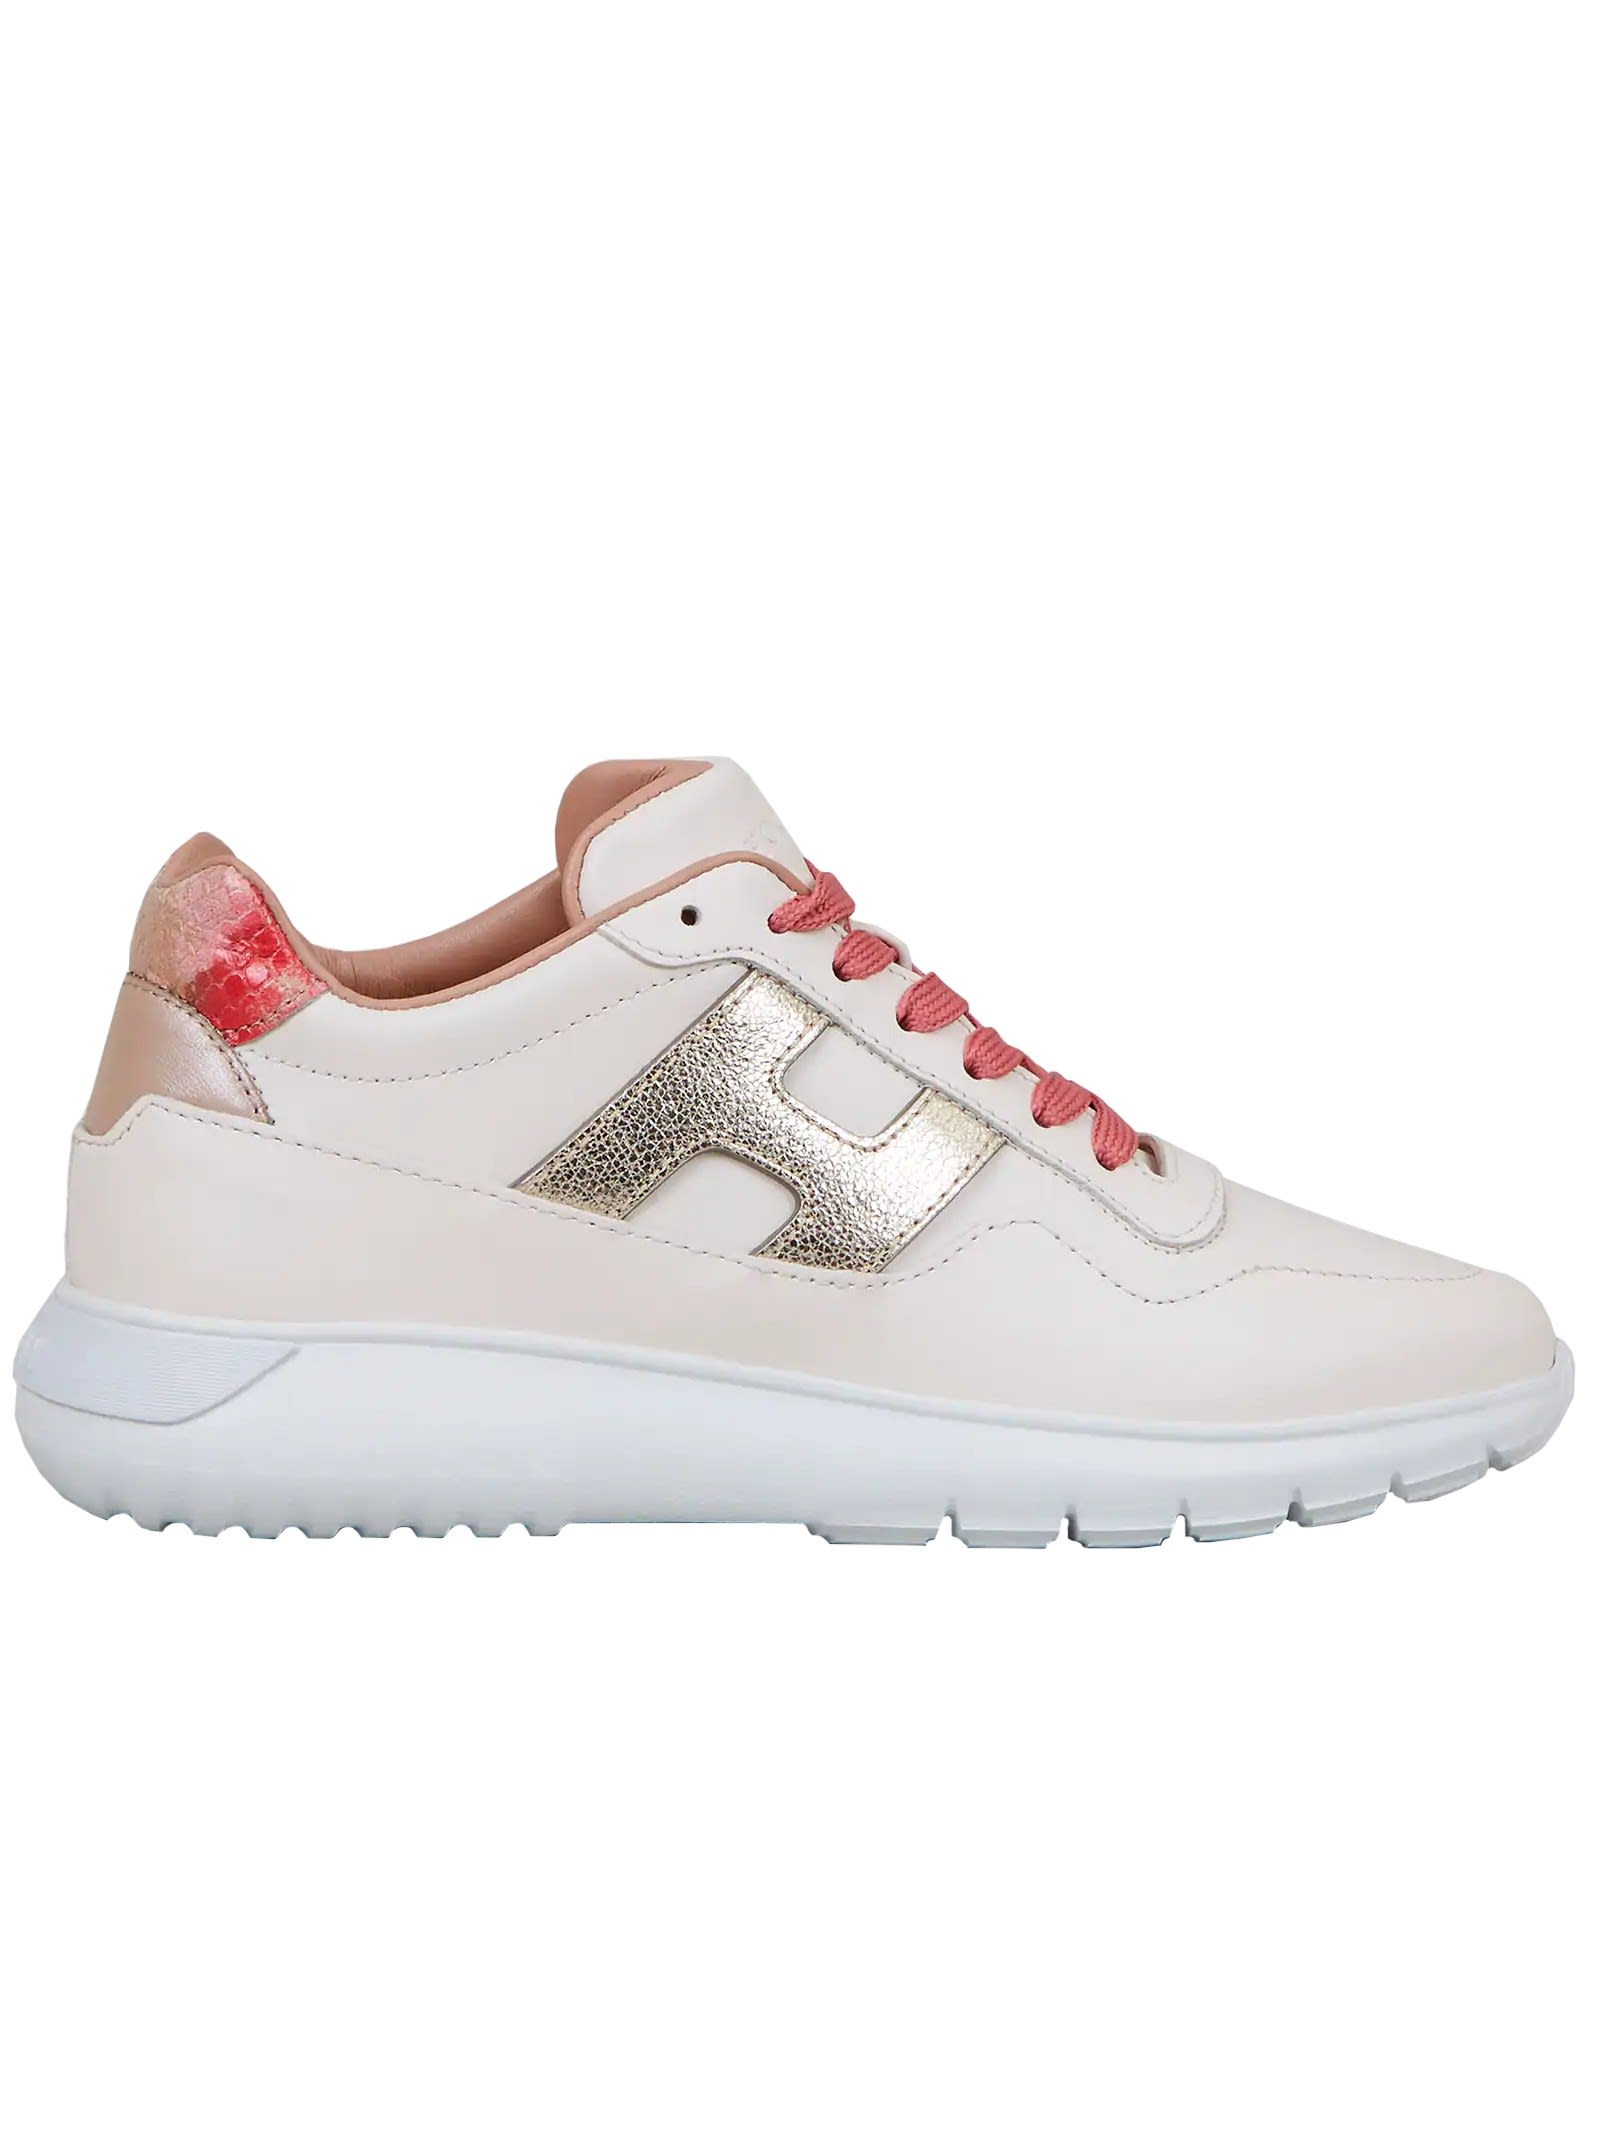 Hogan White Leather Interactive 3 Sneakers